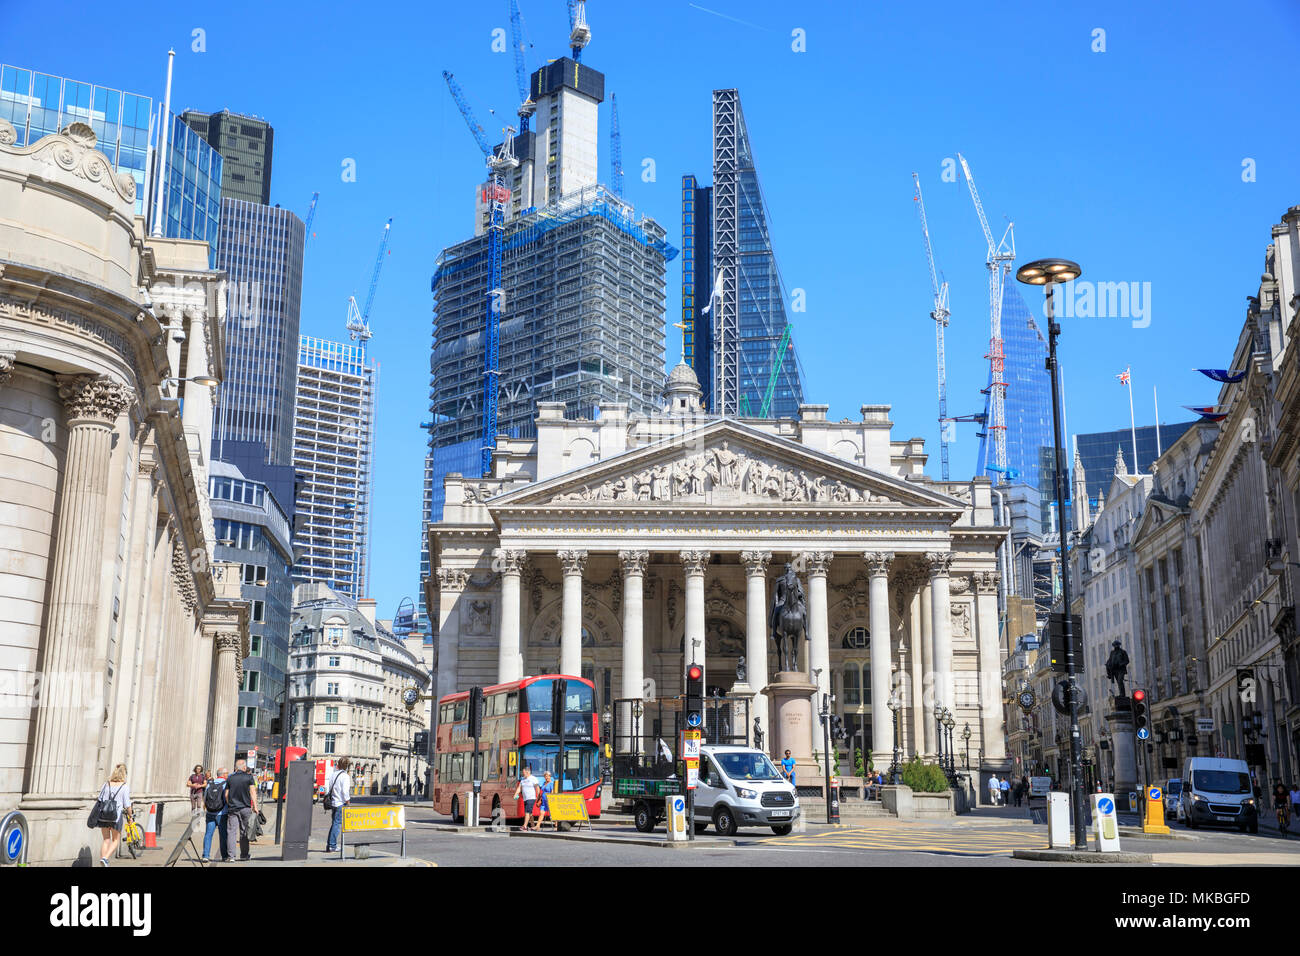 Royal Exchange & The City of London. - Stock Image